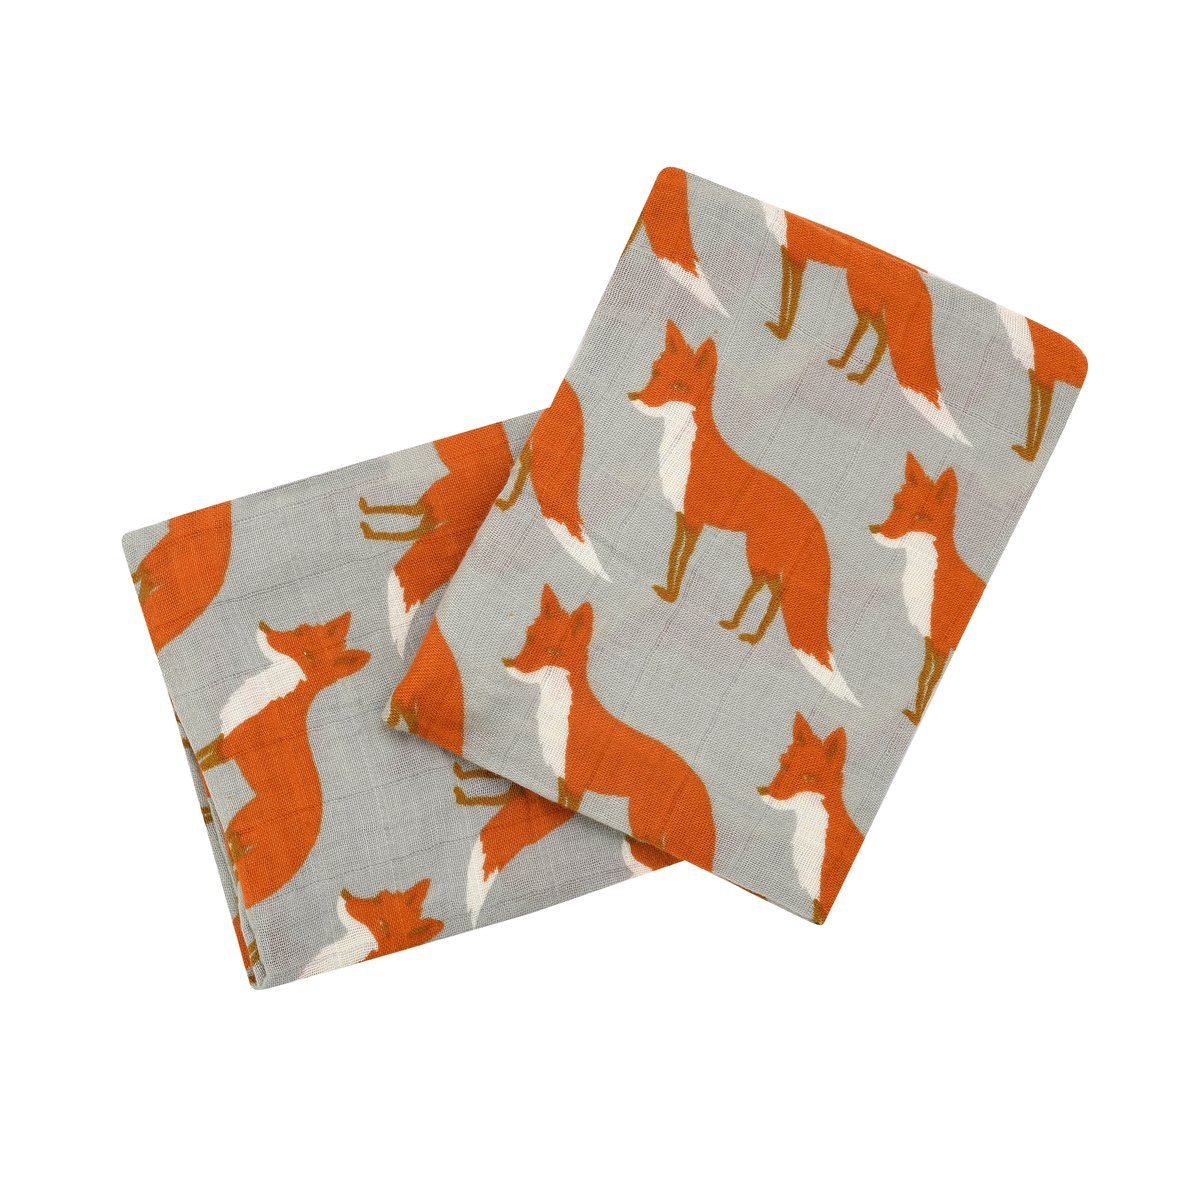 Milkbarn Organic Cotton Burp Cloths''Orange Fox'' - Set of Two